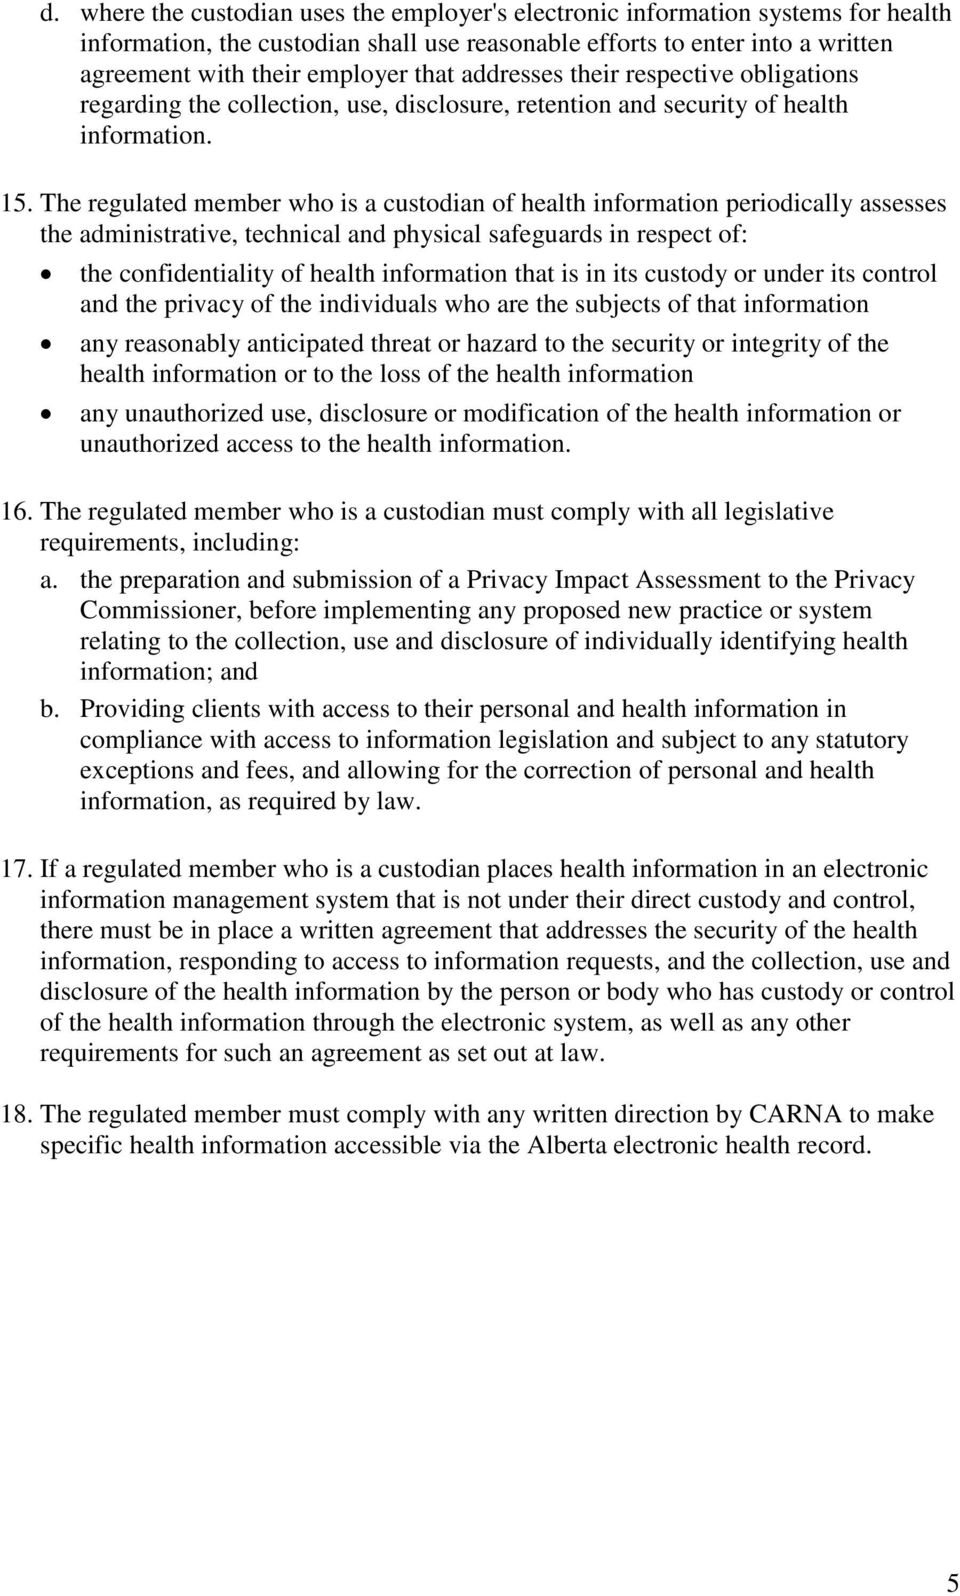 The regulated member who is a custodian of health information periodically assesses the administrative, technical and physical safeguards in respect of: the confidentiality of health information that